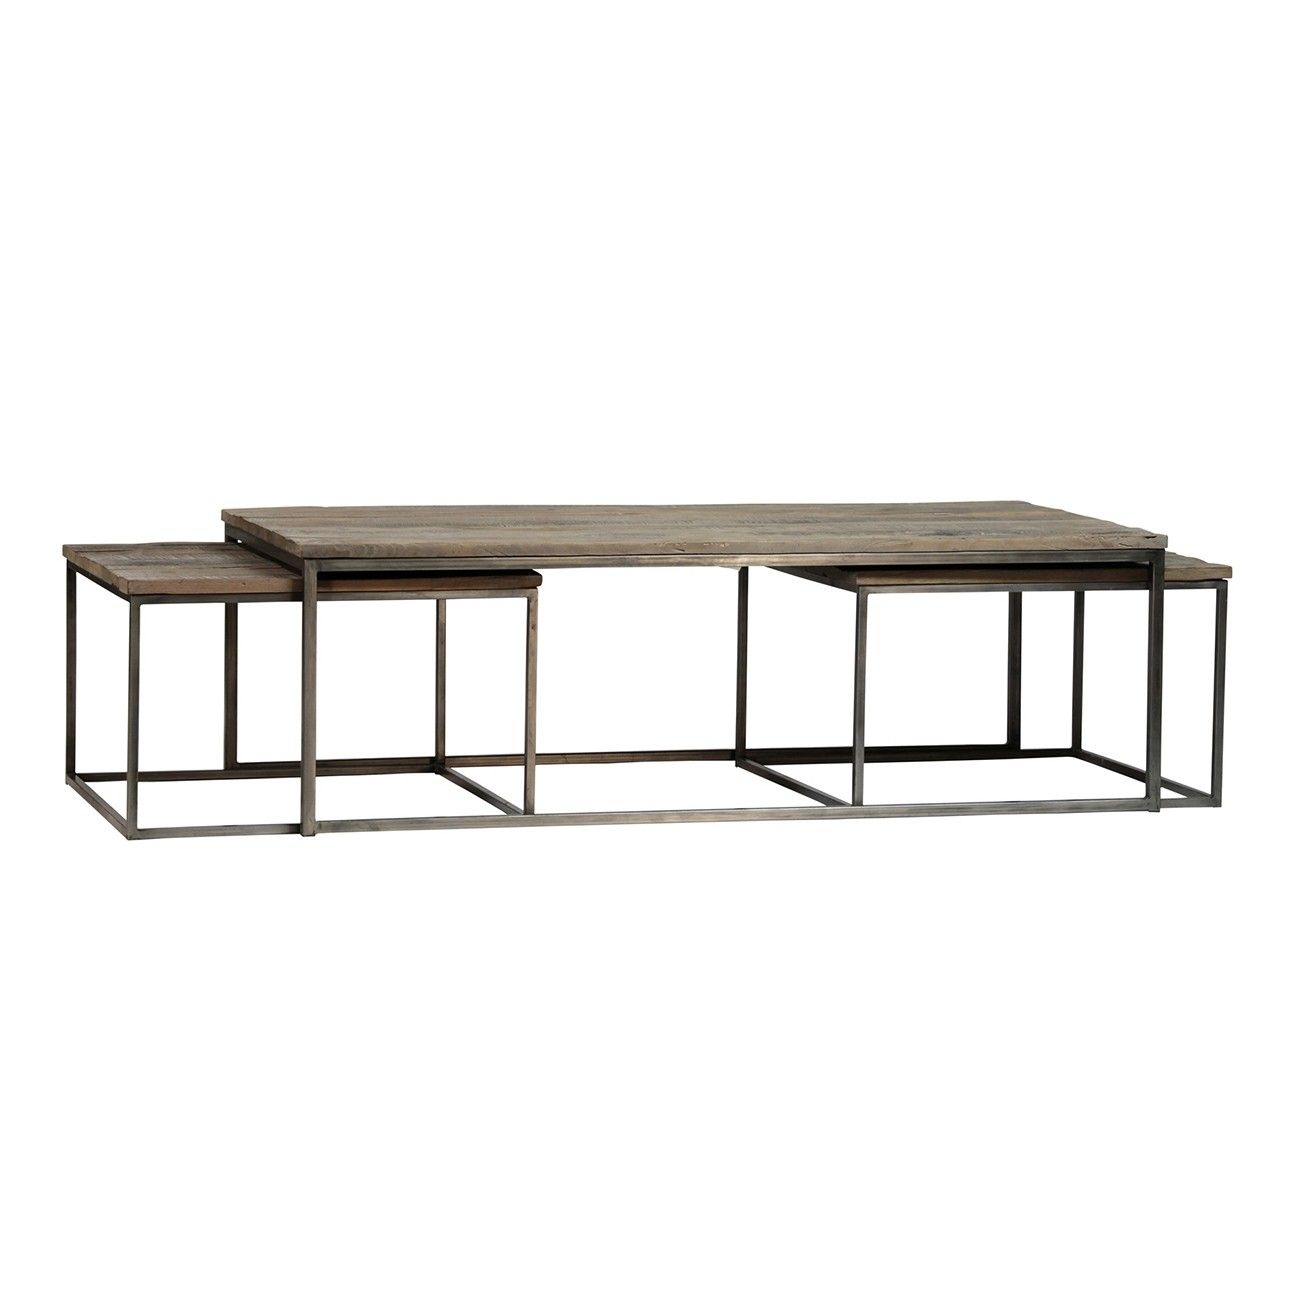 Kirk Coffee Table Set Of 3 Coffee Table Coffee Table Setting Table [ 1299 x 1299 Pixel ]